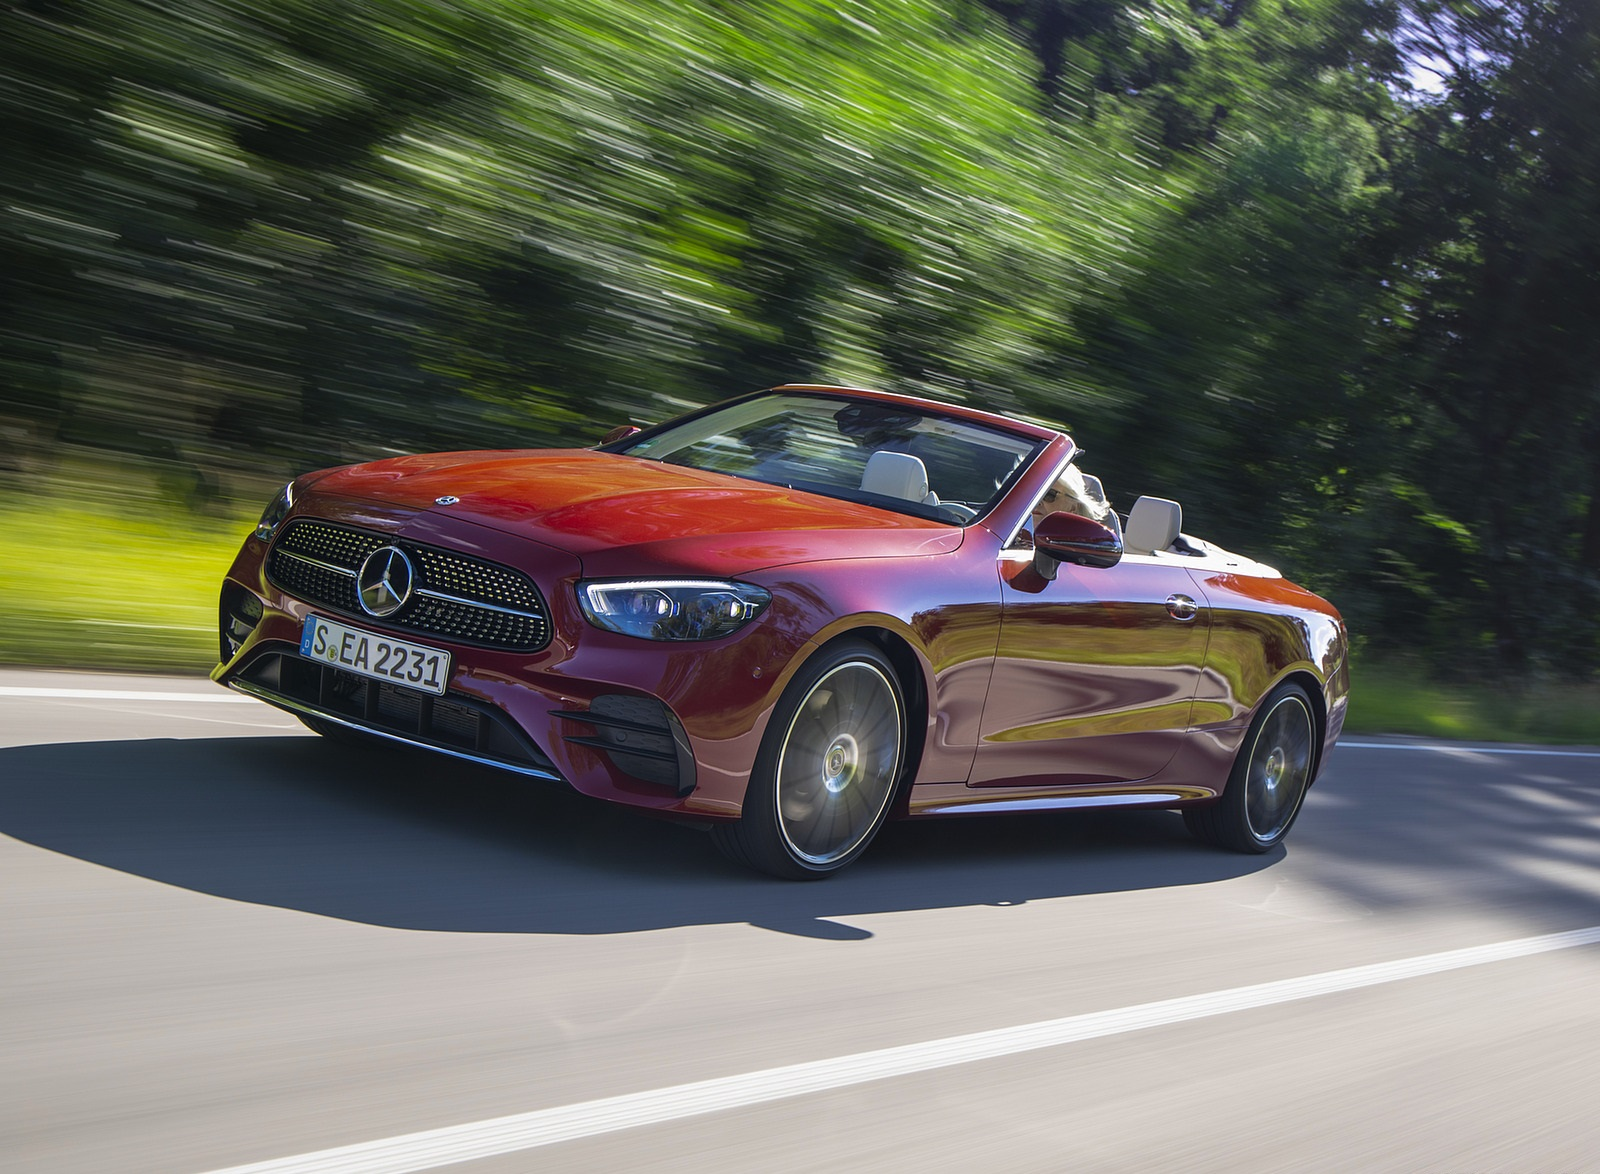 2021 Mercedes-Benz E 450 4MATIC Cabriolet (Color: Patagonia Red) Front Three-Quarter Wallpapers (1)